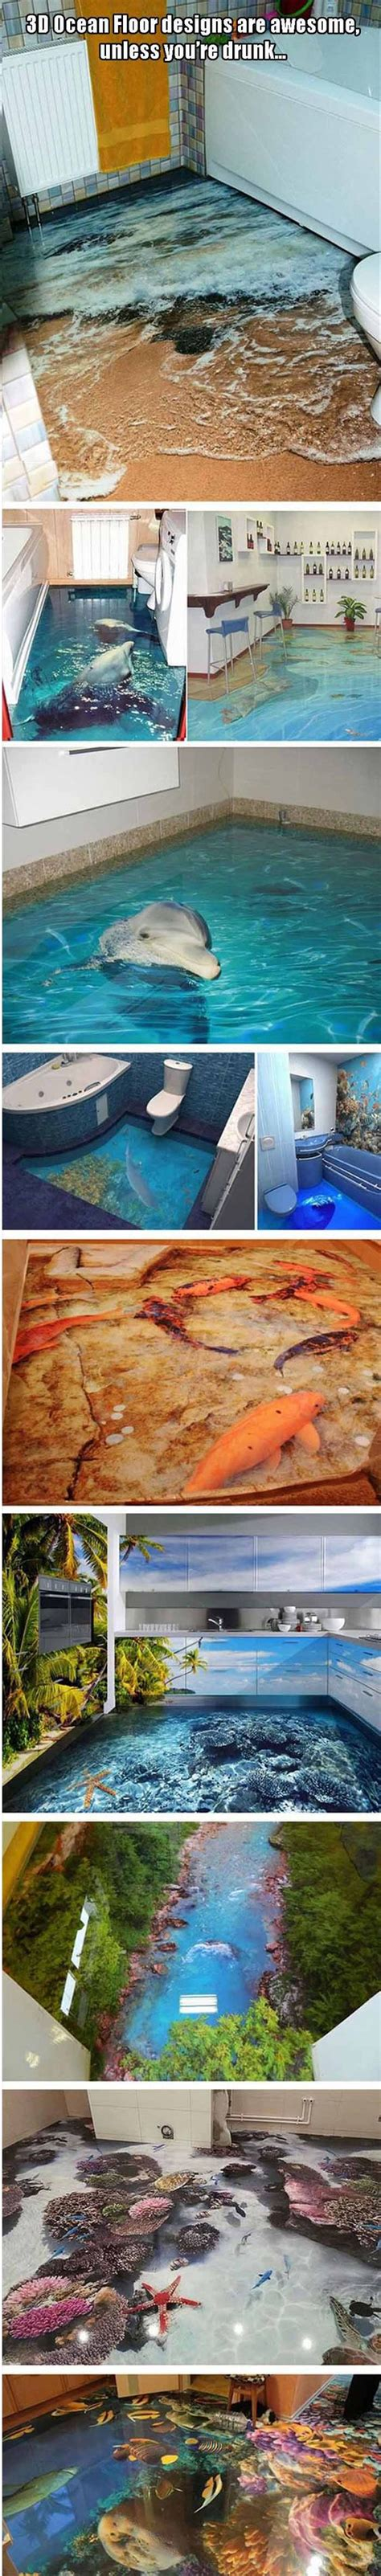 3d ocean floor designs 3d ocean floor designs are awesome unless youre drunk 10